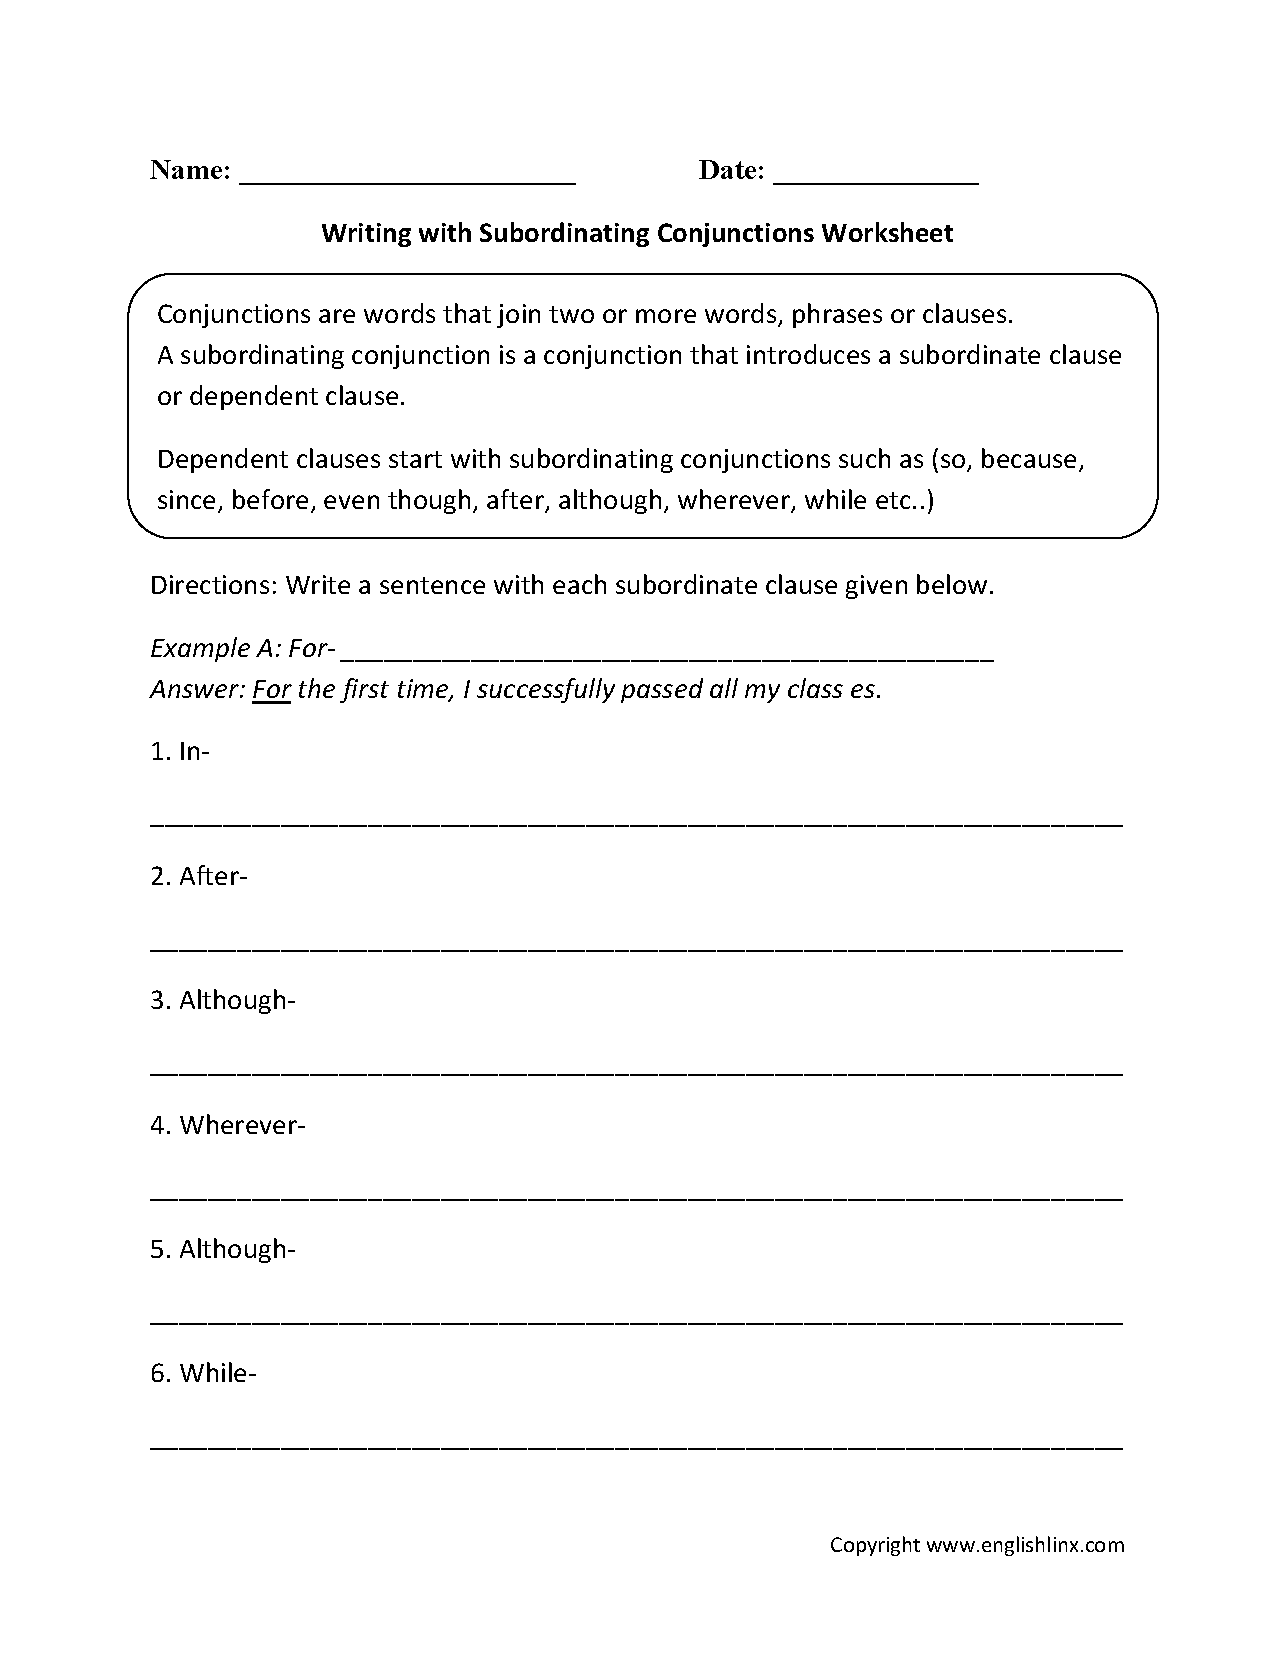 Free Worksheet Fanboys Grammar Worksheet englishlinx com conjunctions worksheets subordinating worksheets